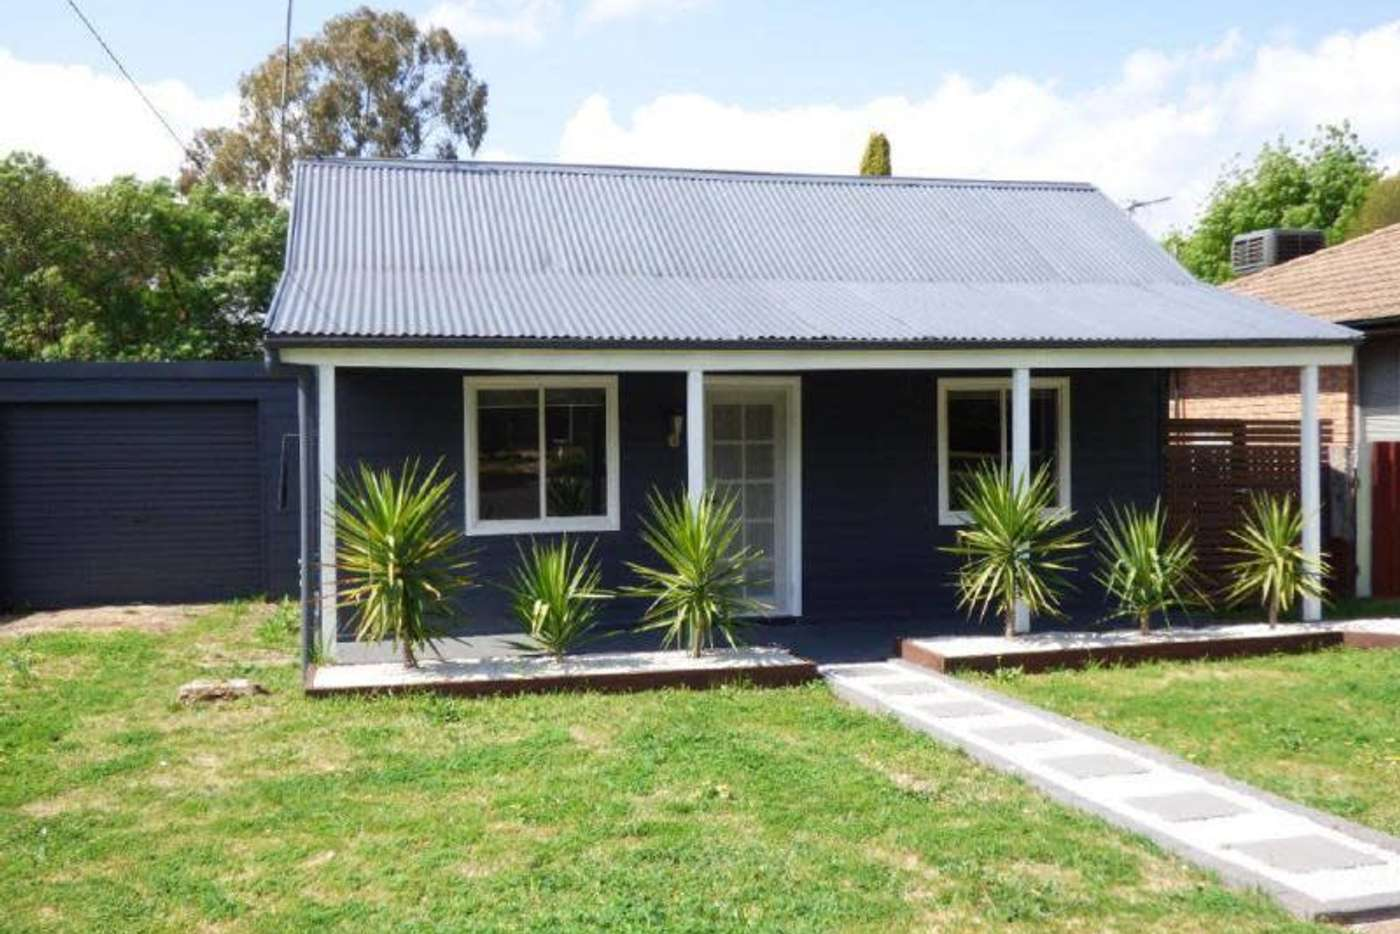 Main view of Homely house listing, 47 Cowcumbla Street, Cootamundra NSW 2590